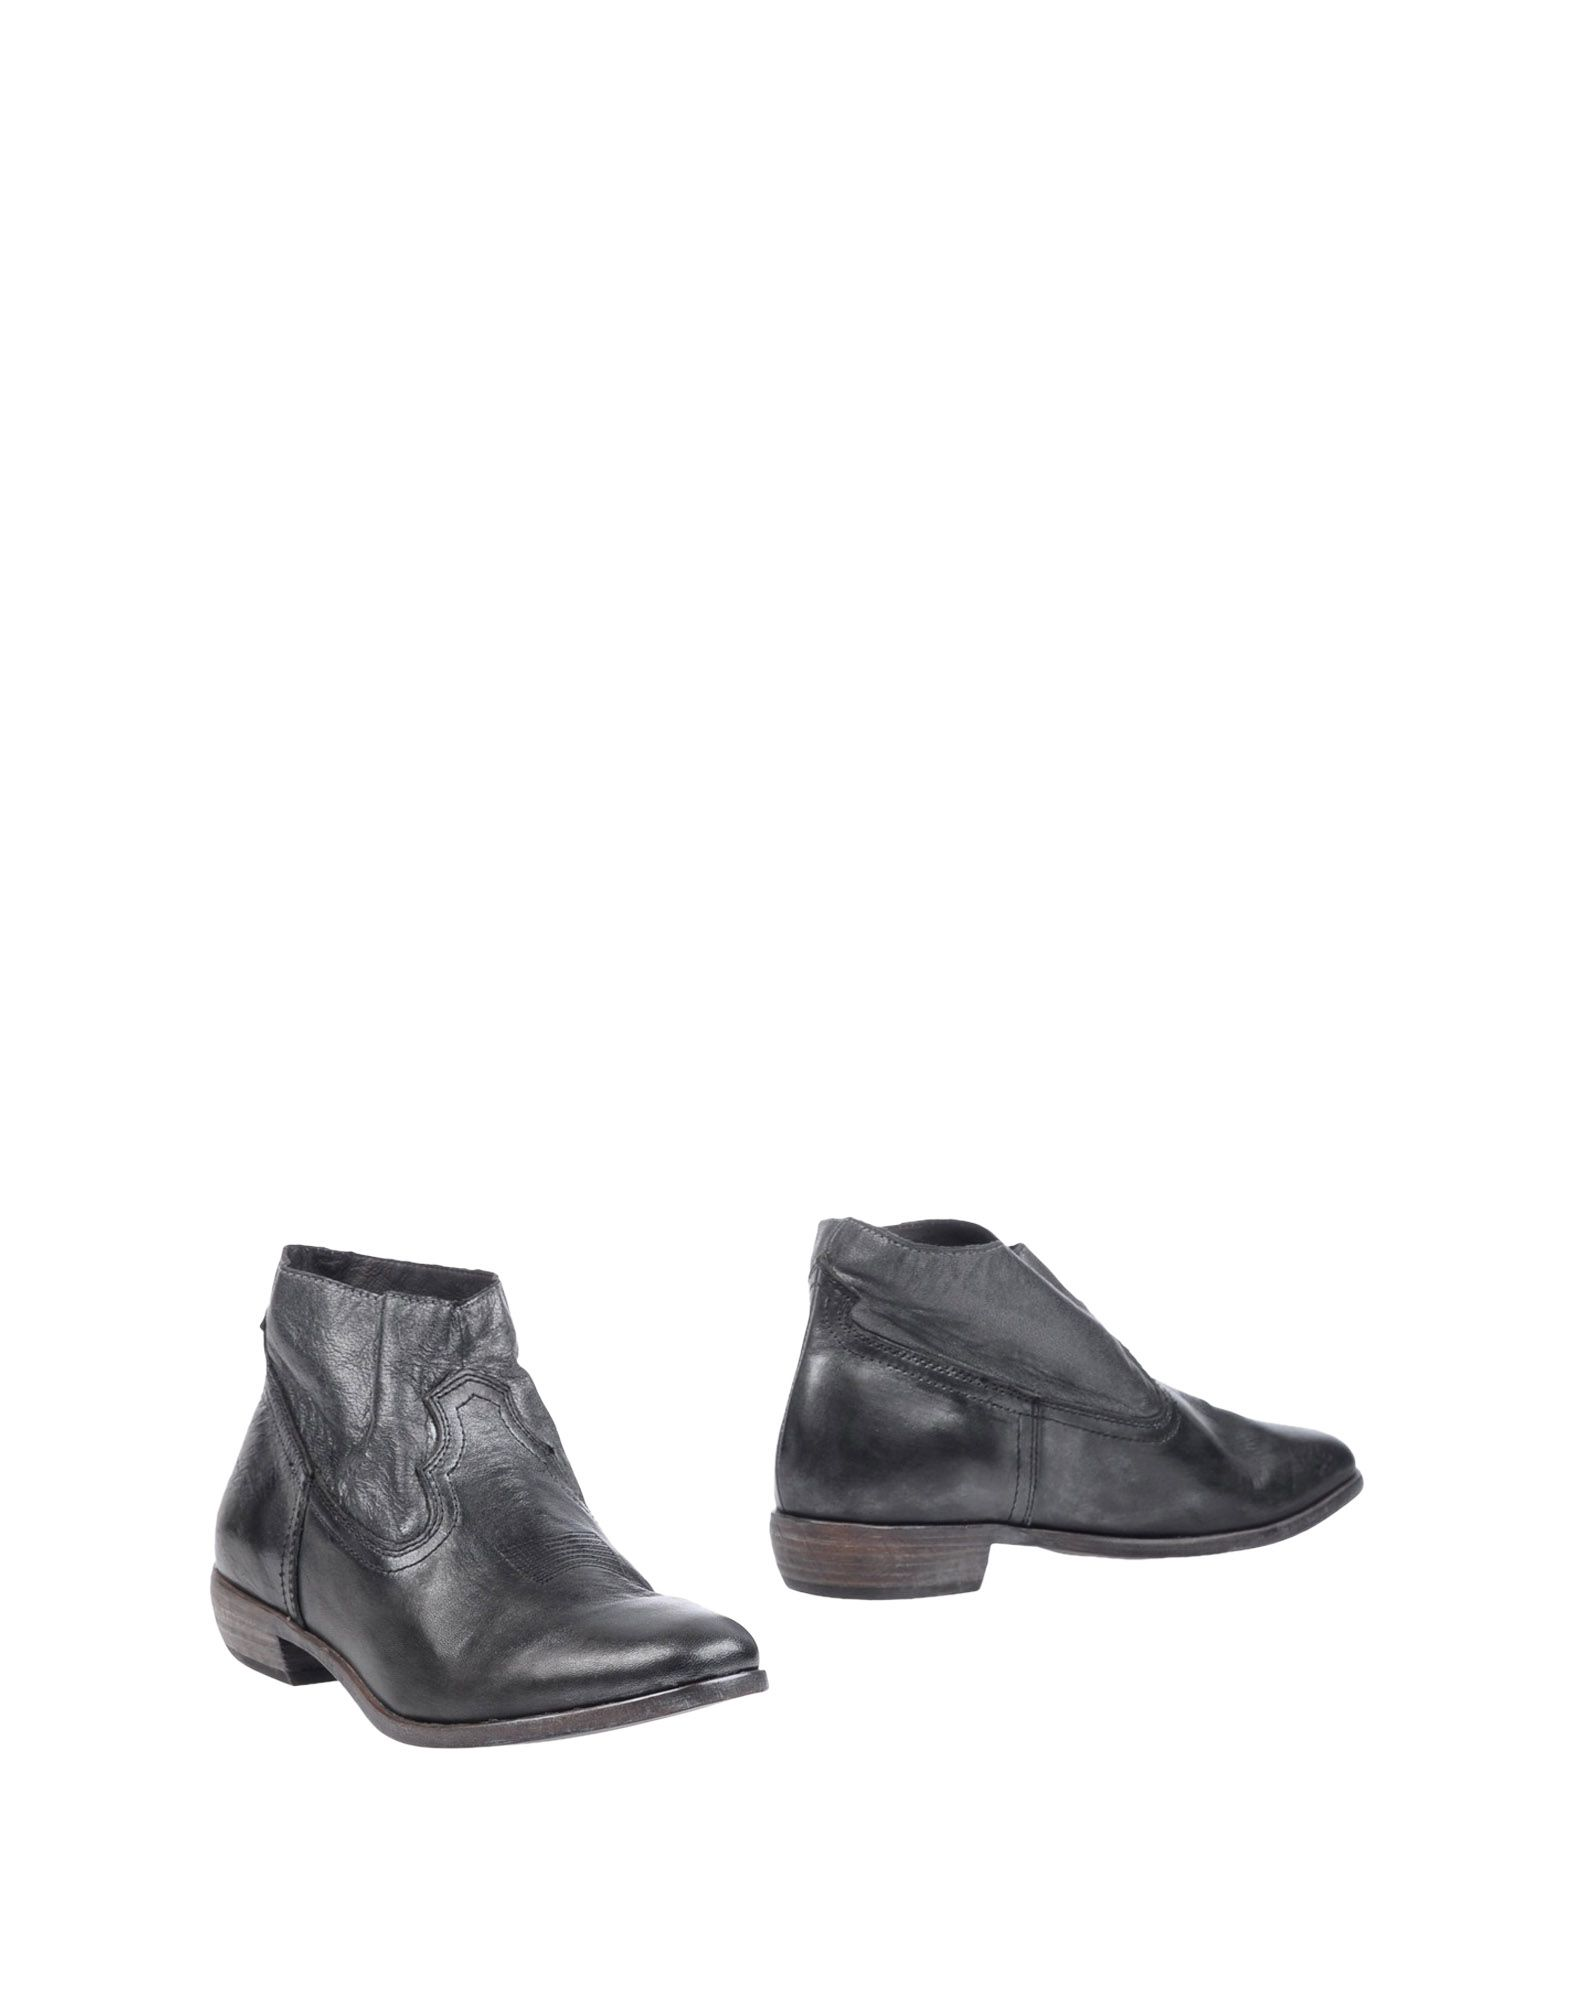 Bottine Crime London Femme - Bottines Crime London sur